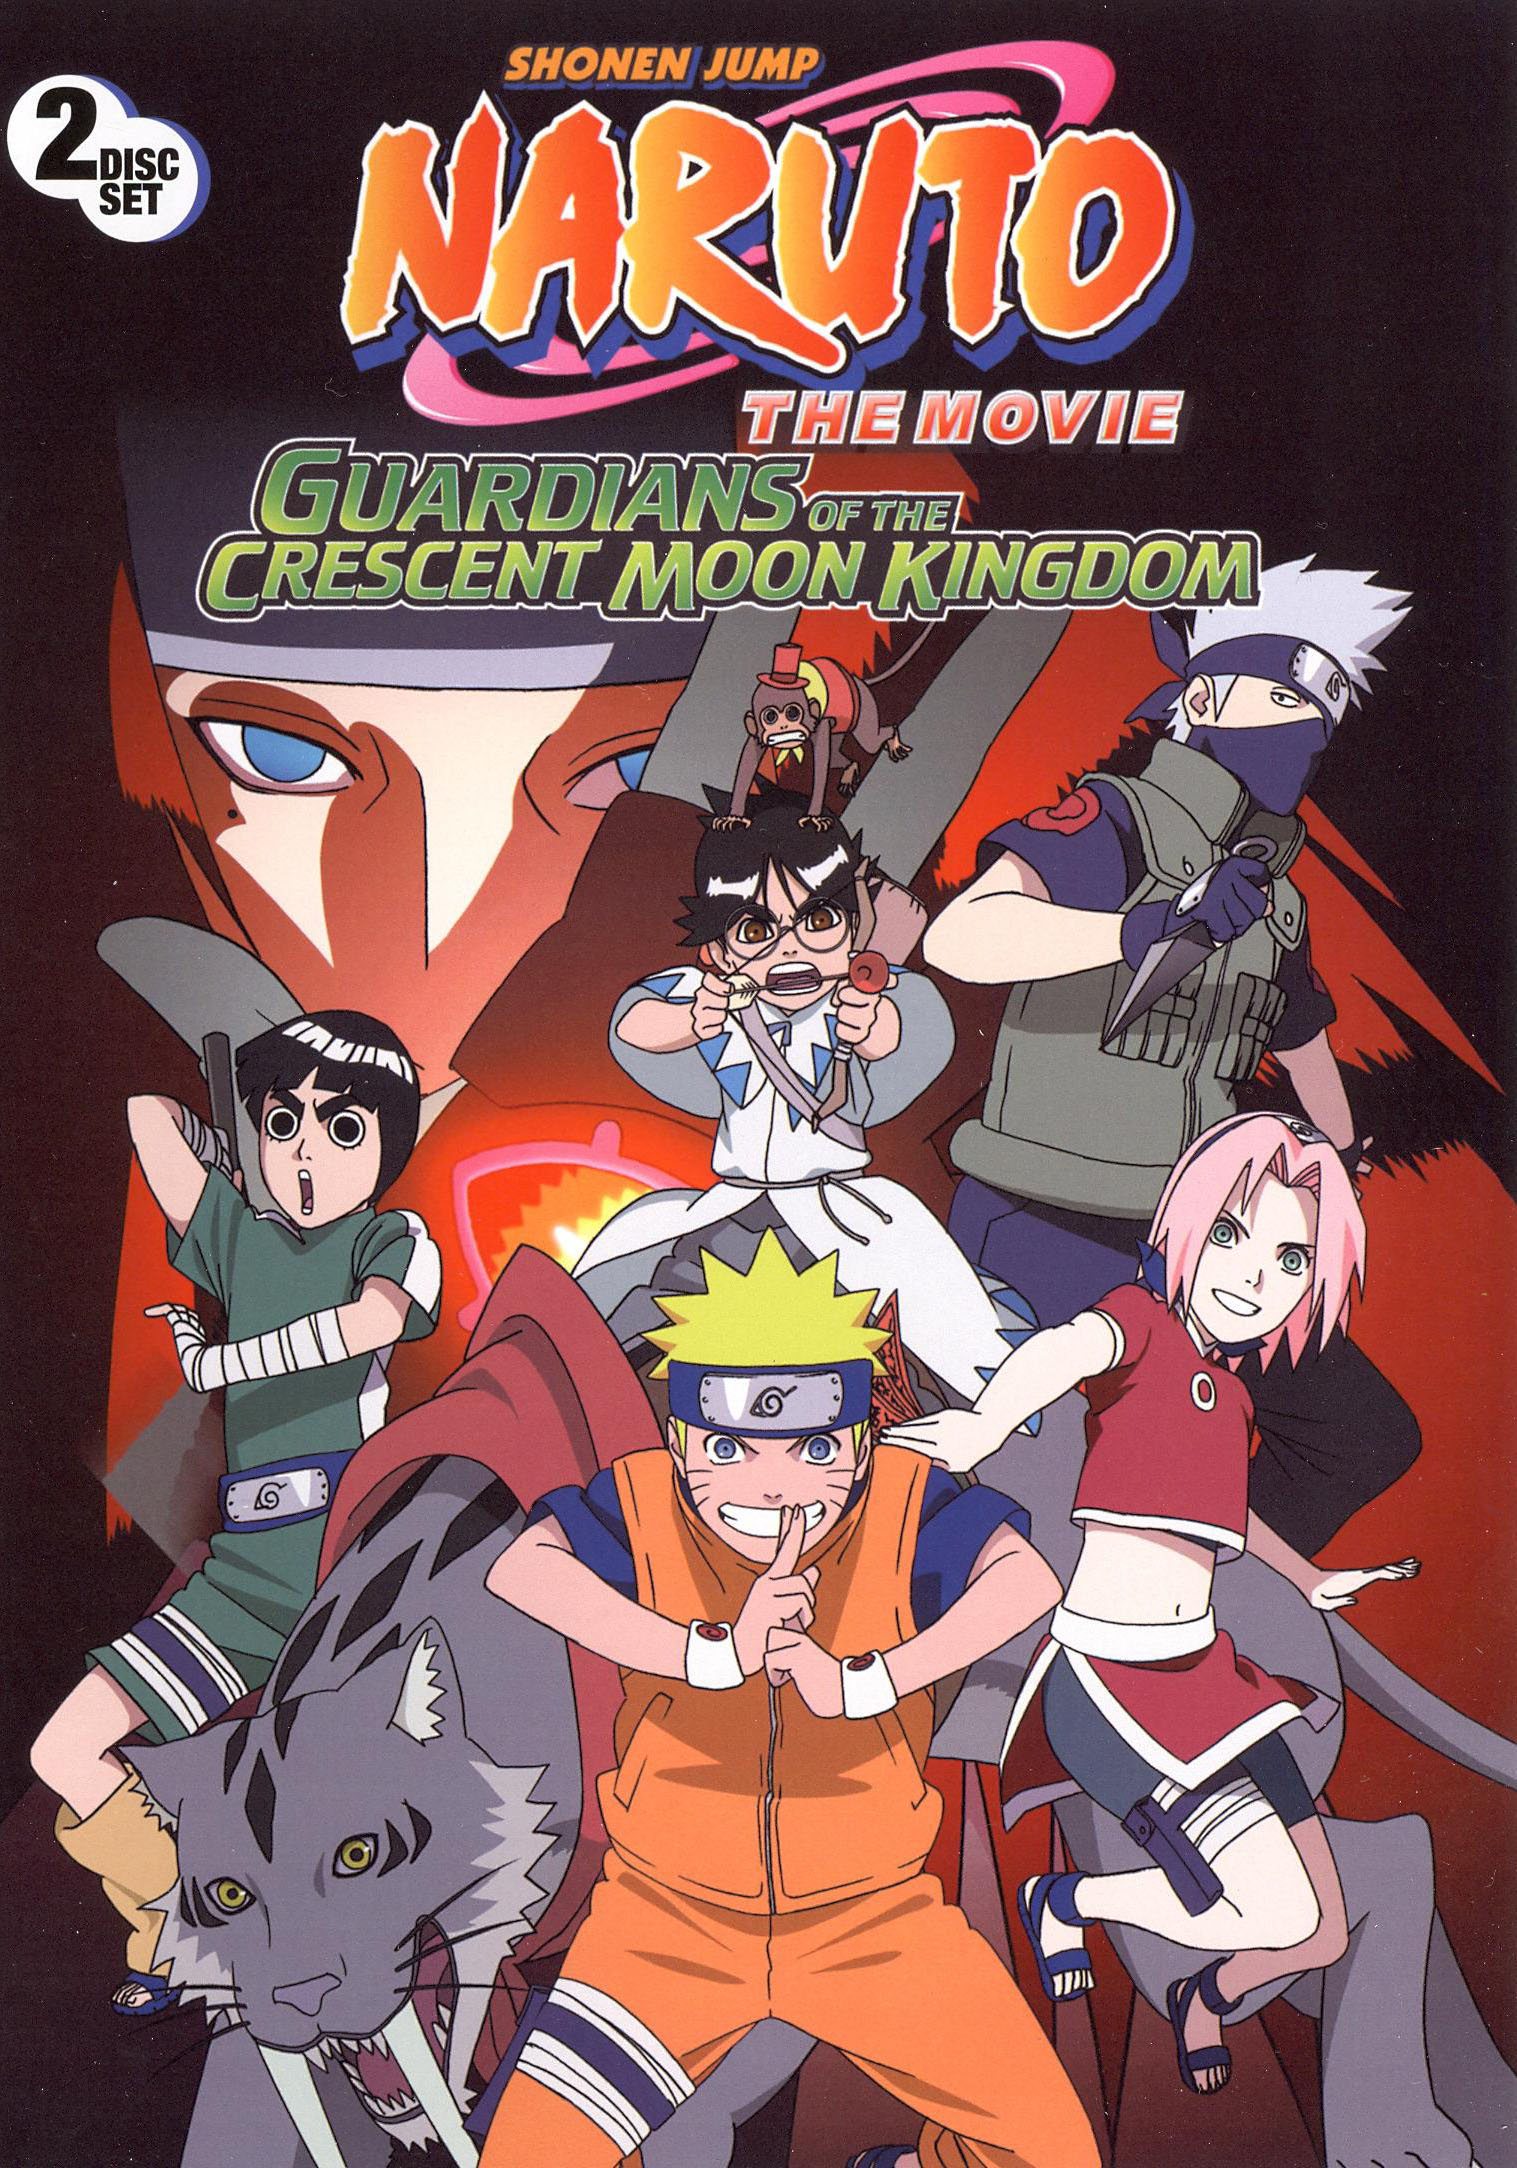 naruto guardians of the crescent moon kingdom ending a relationship